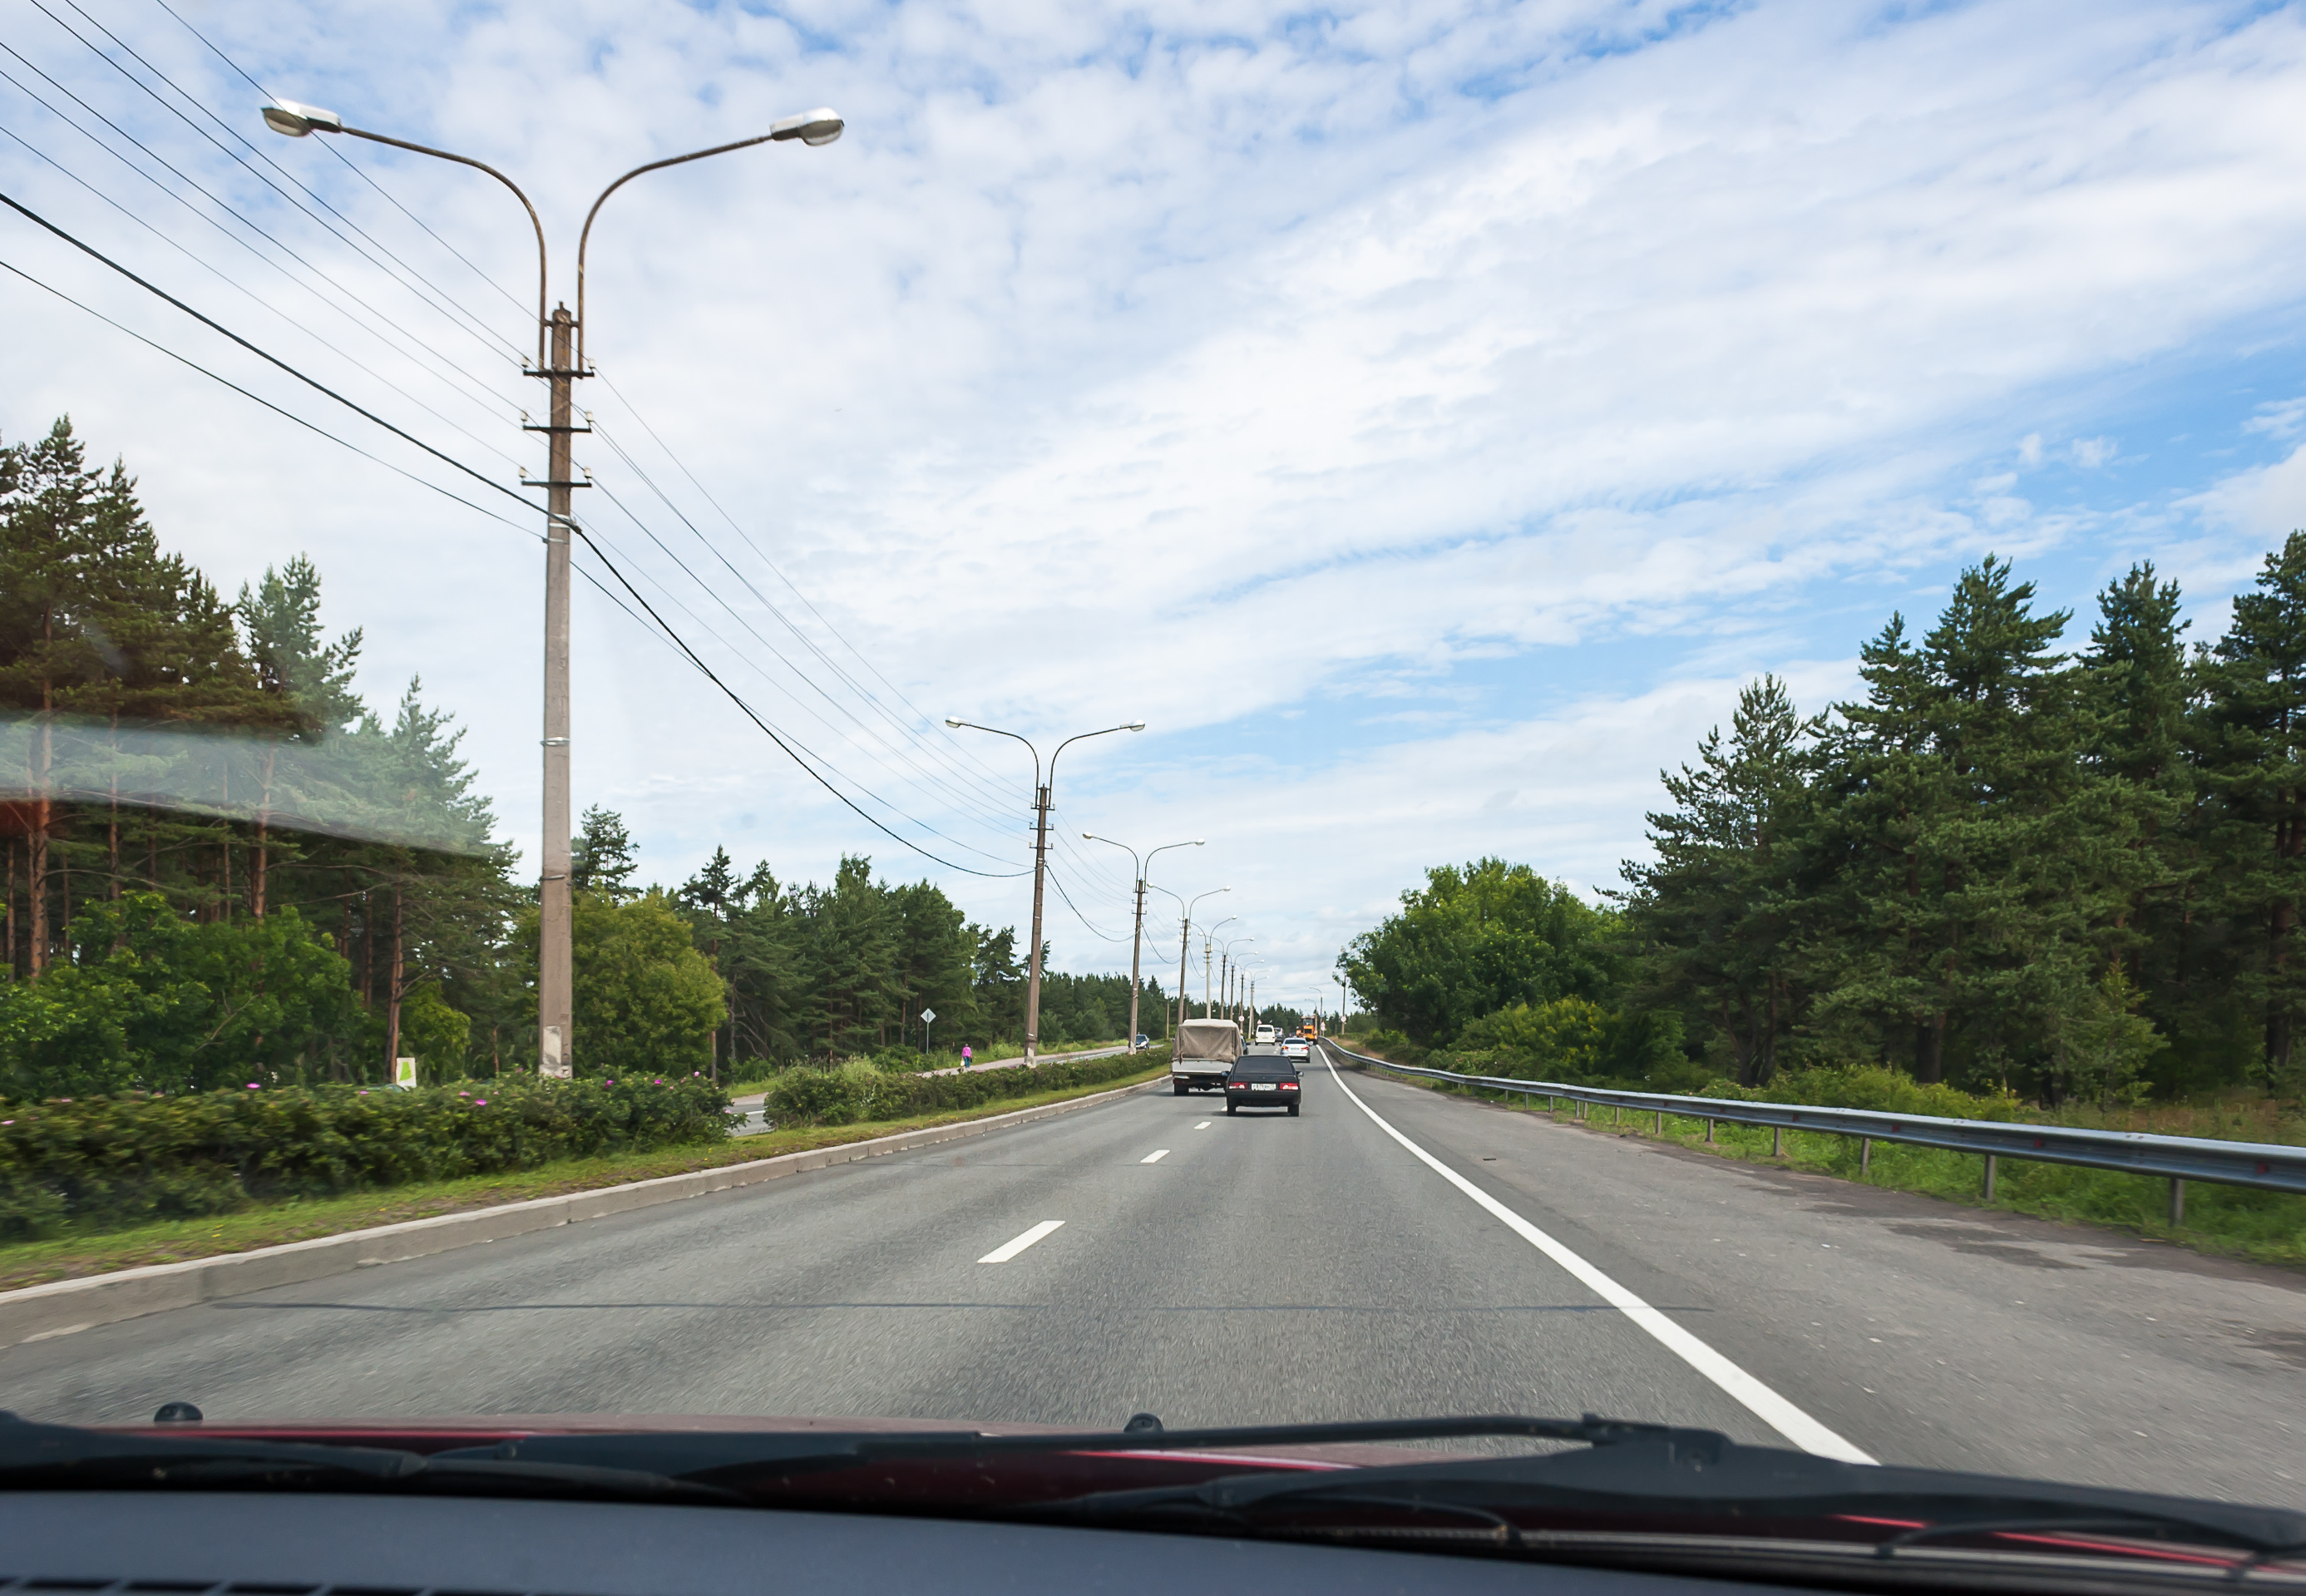 how to get to wanuskawin road from highway 11